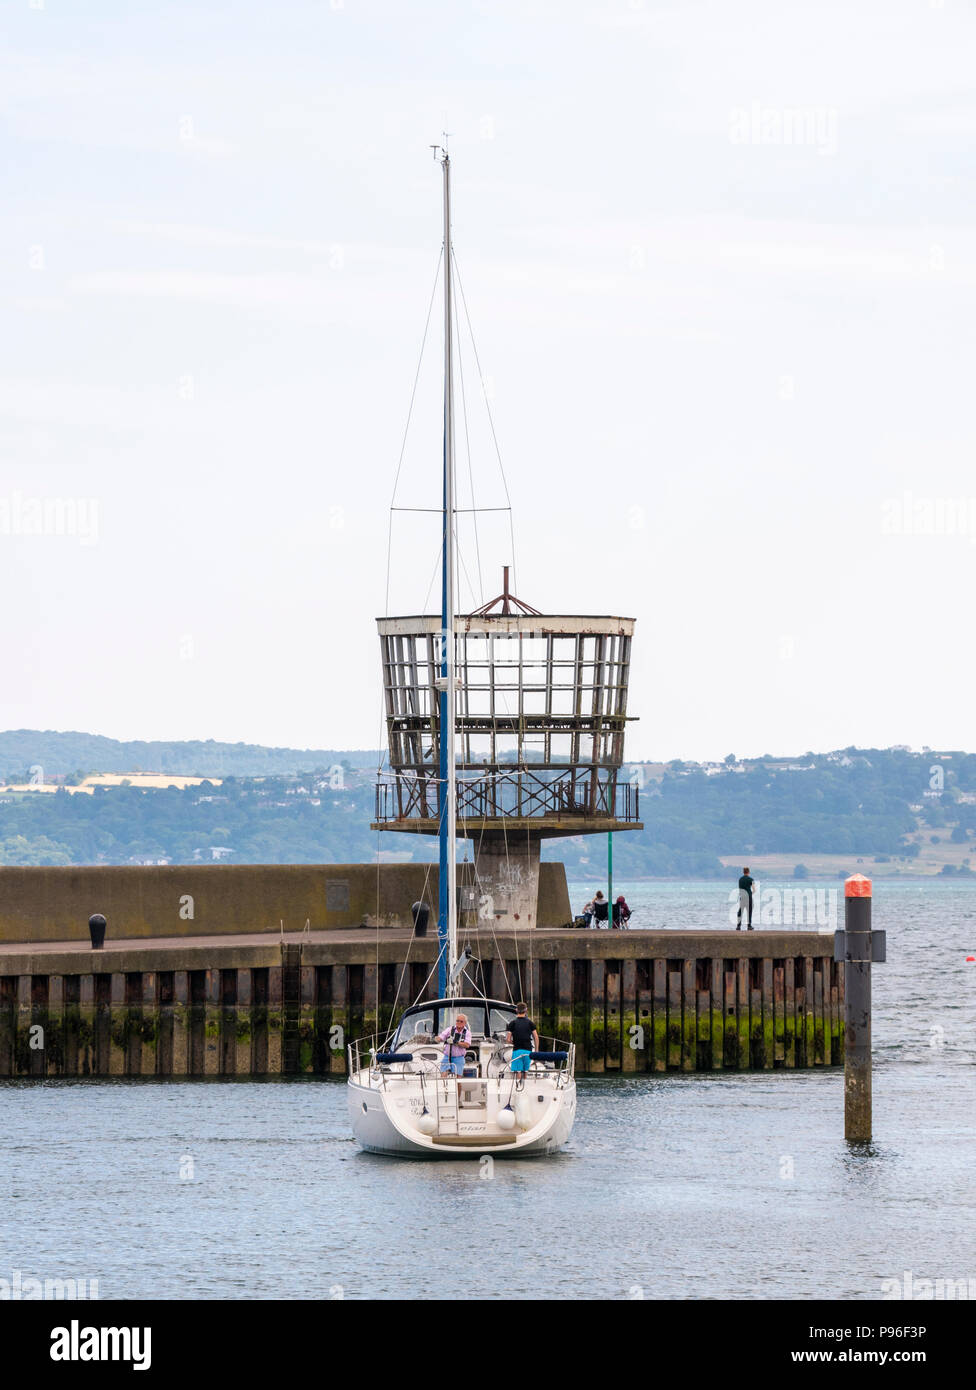 A yacht sails past the derelict Radio Control Tower, Carrickfergus, Northern Ireland. The tower was originally used to monitor shipping in Belfast Lou - Stock Image